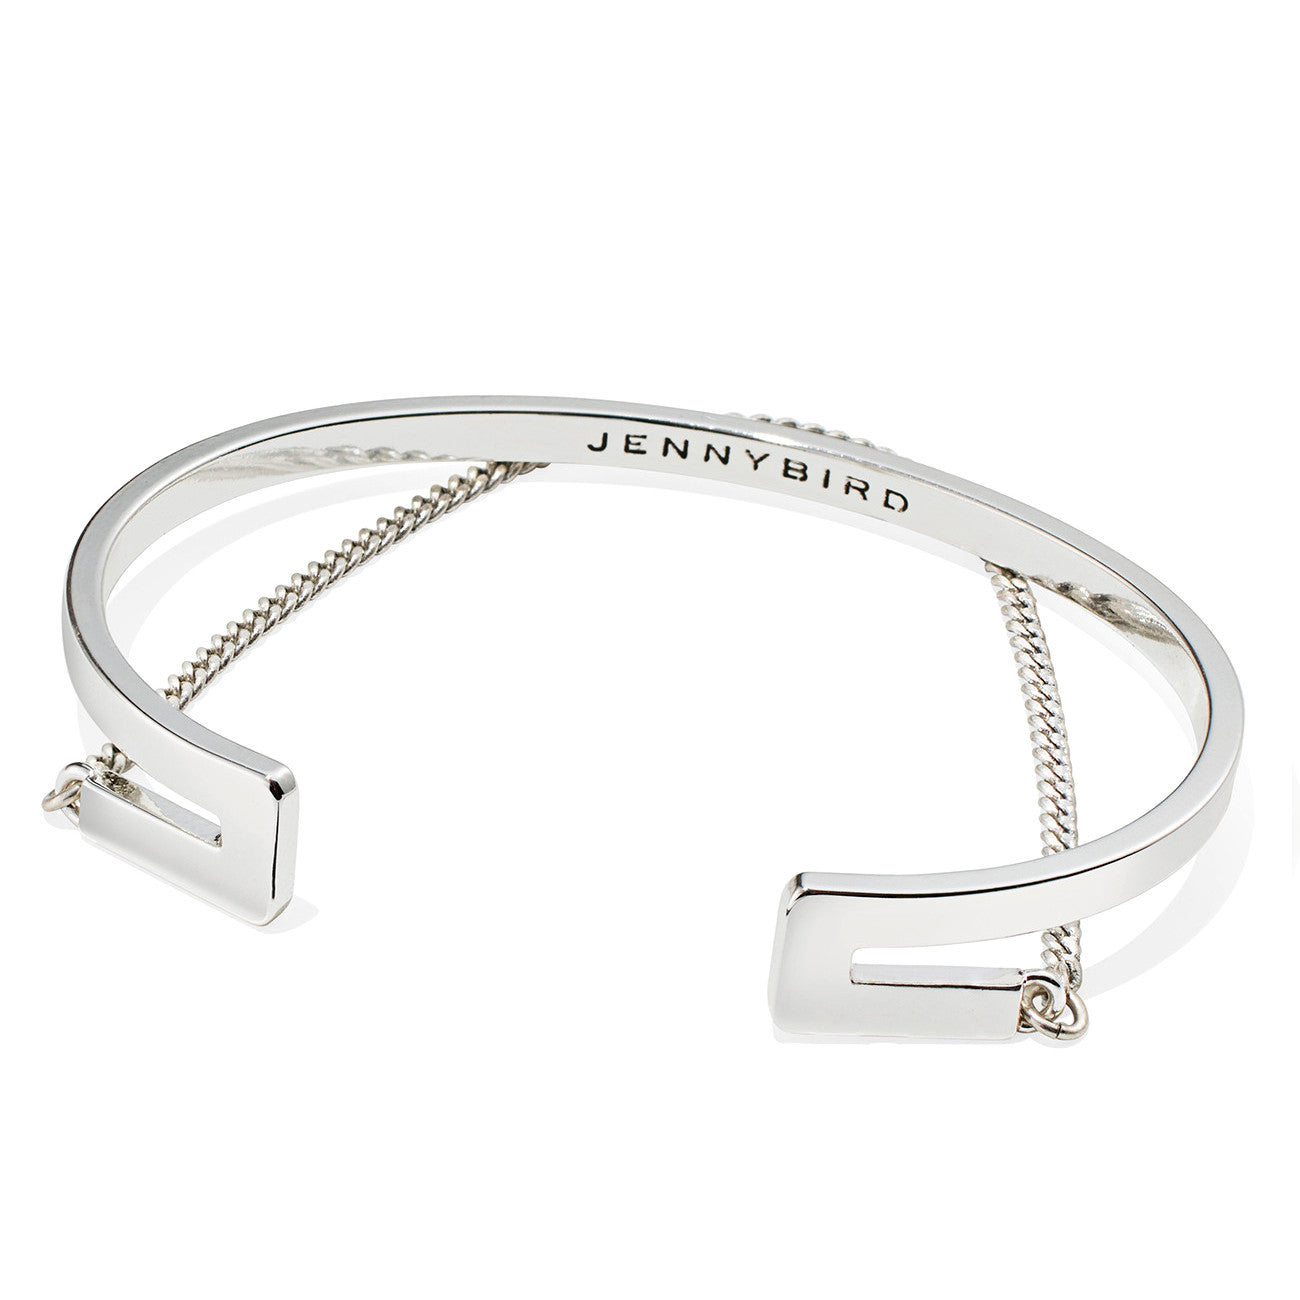 Jenny Bird Mia Cuff in High Polish Silver